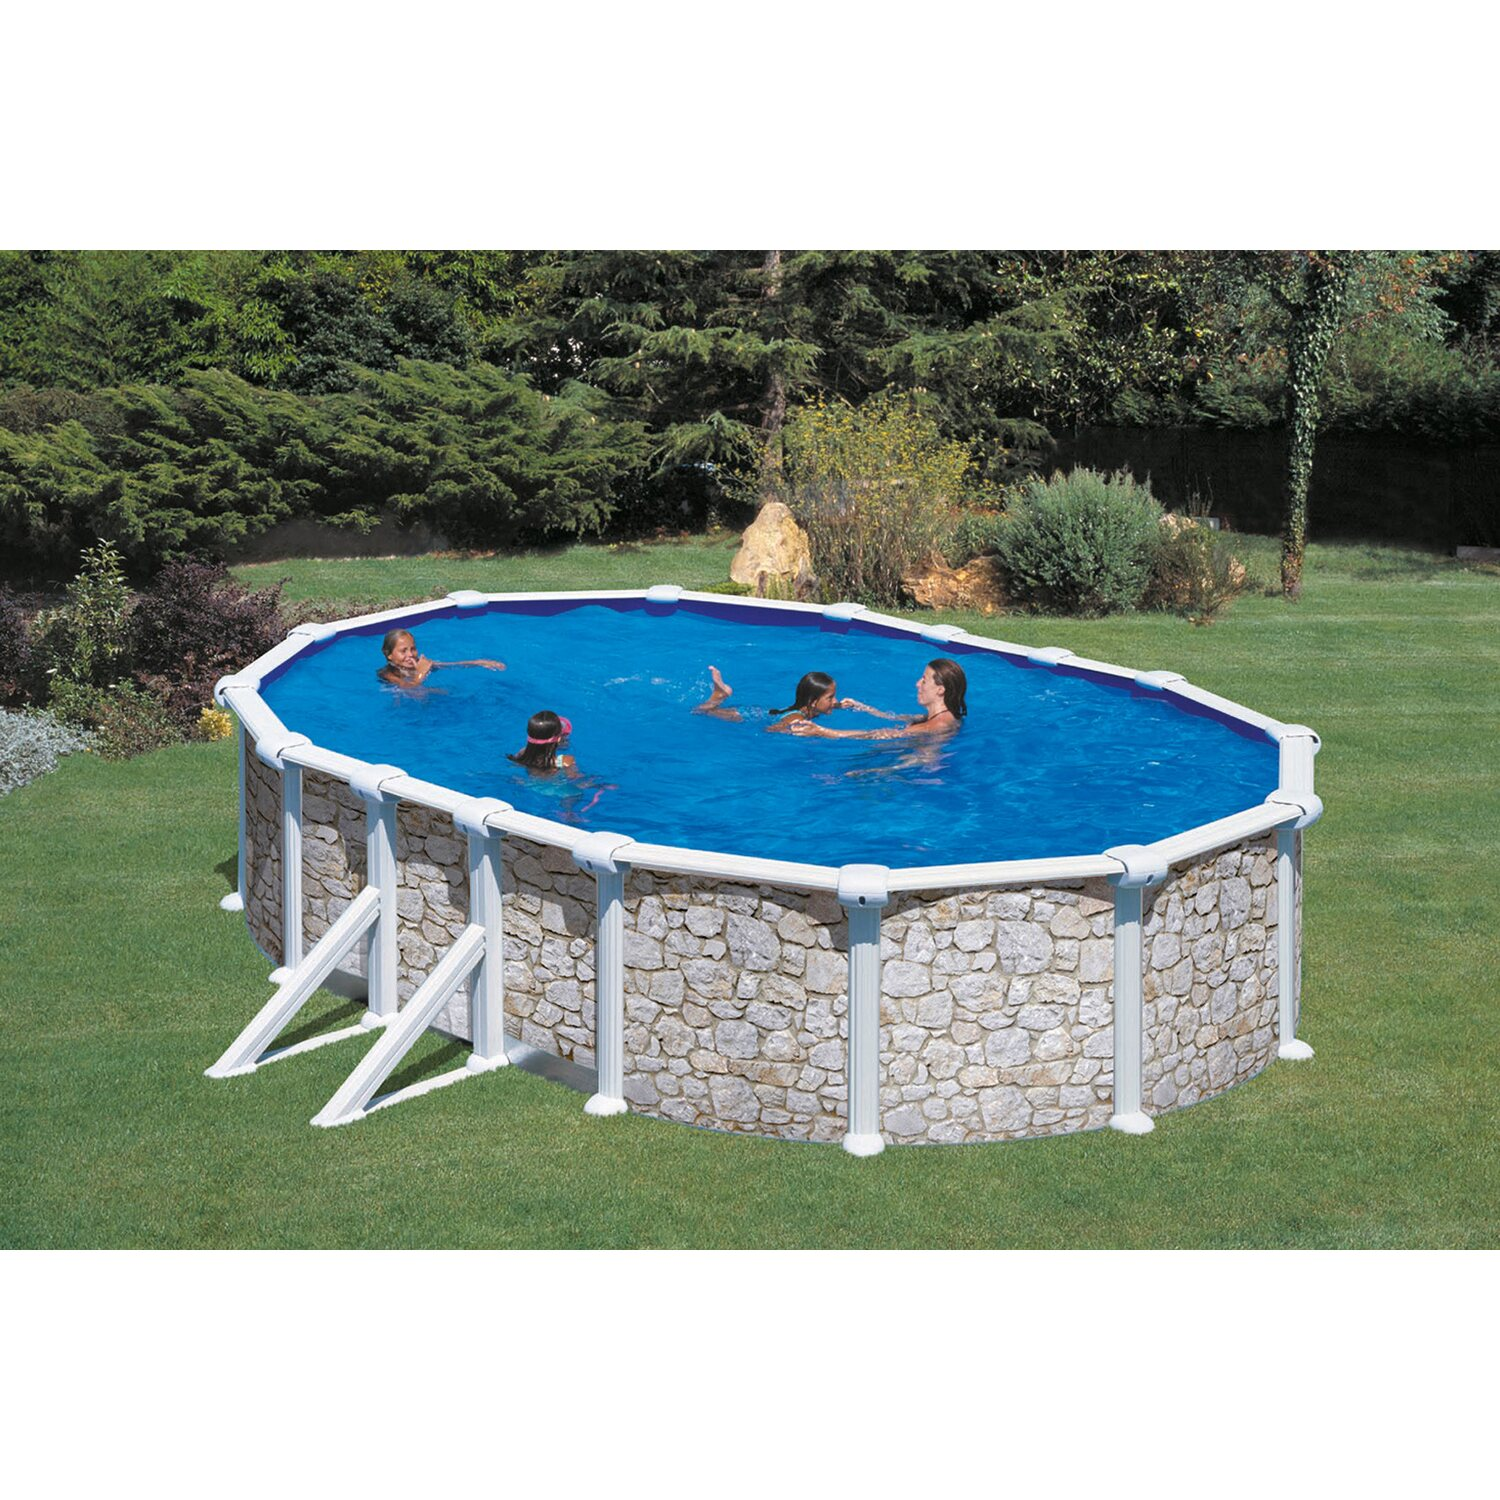 summer fun stahlwand pool set valencia 500 cm x 300 cm x 120 cm stein dekor kaufen bei obi. Black Bedroom Furniture Sets. Home Design Ideas